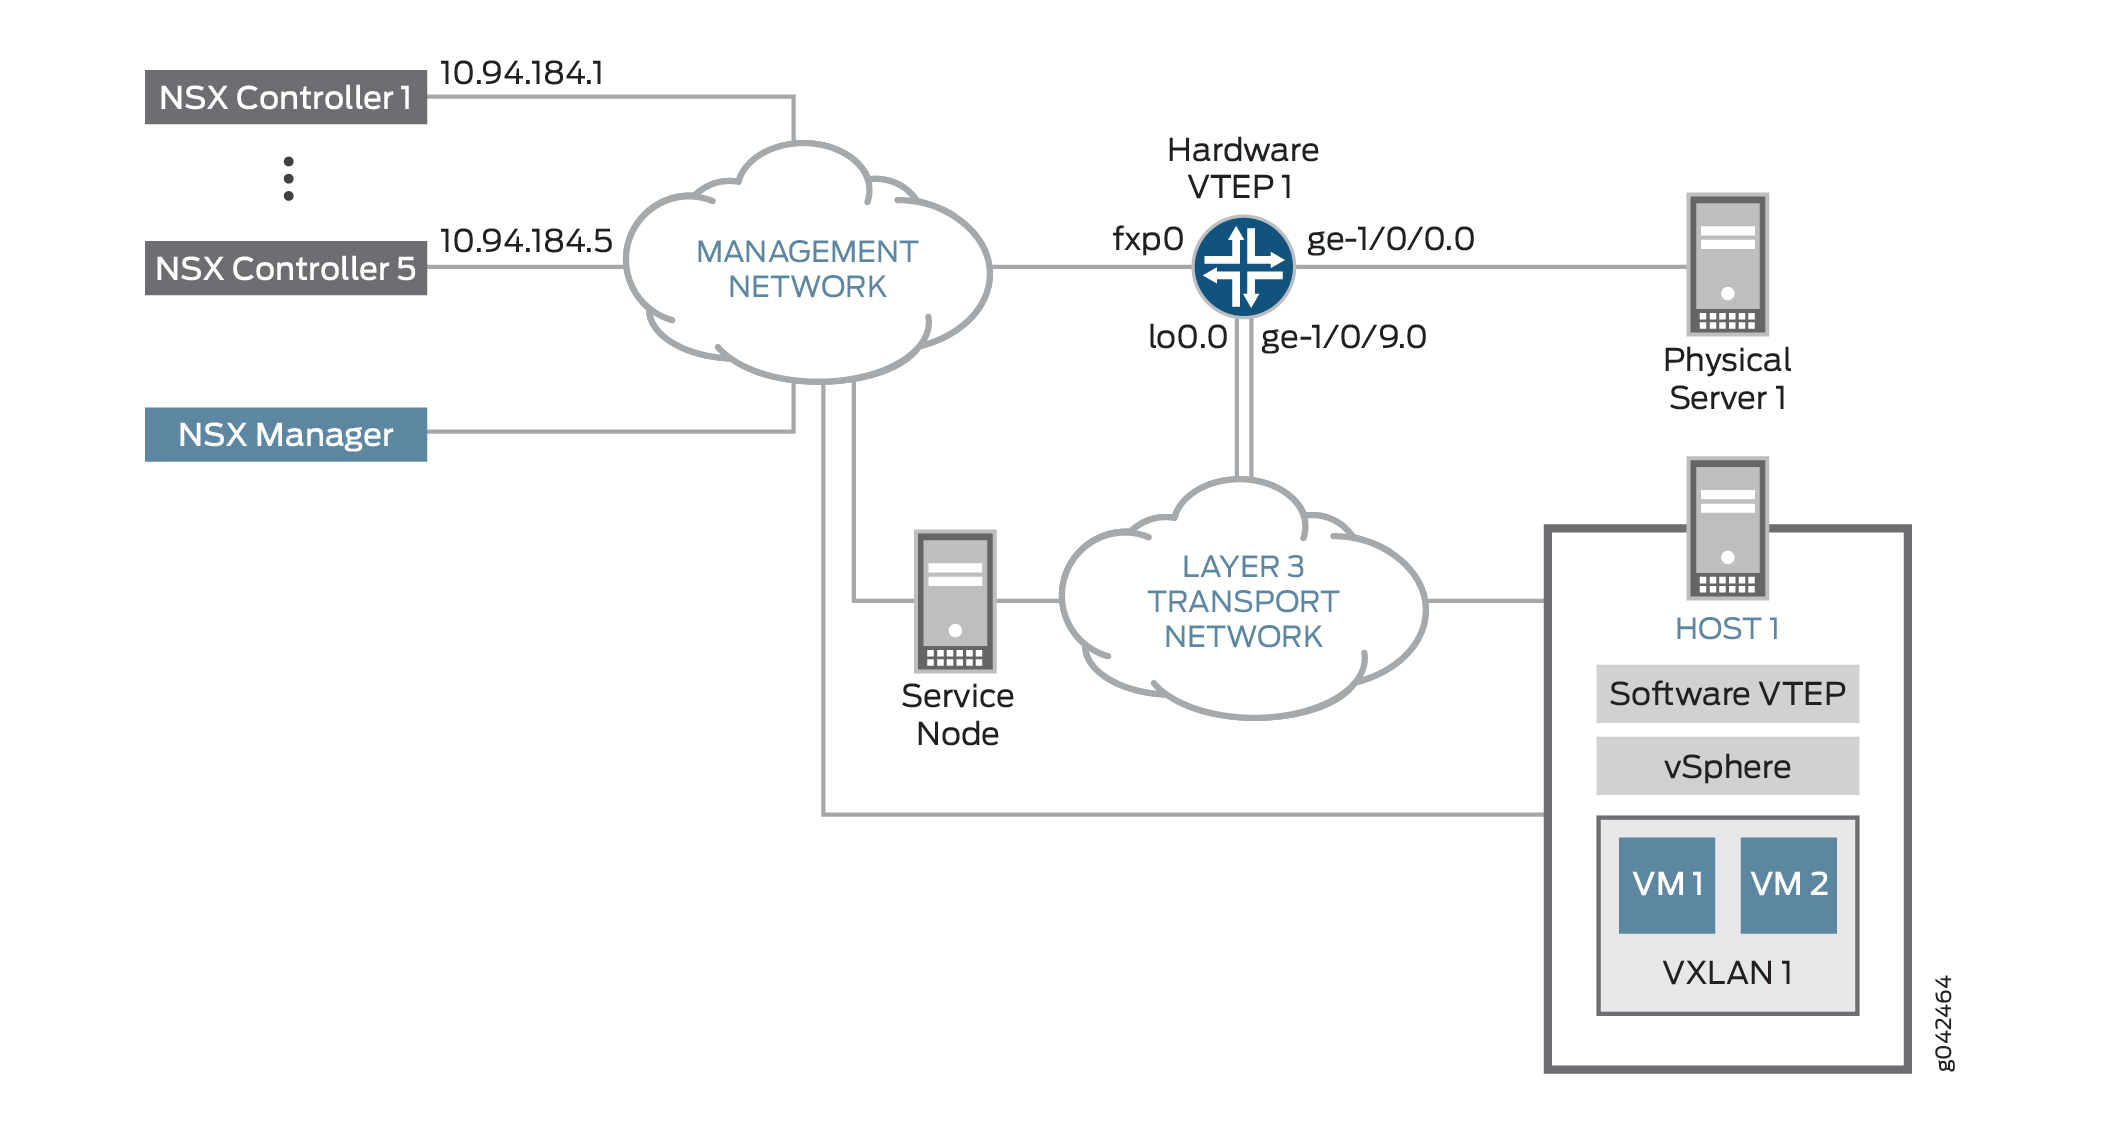 Integration of Juniper Networks Device into NSX for vSphere Environment